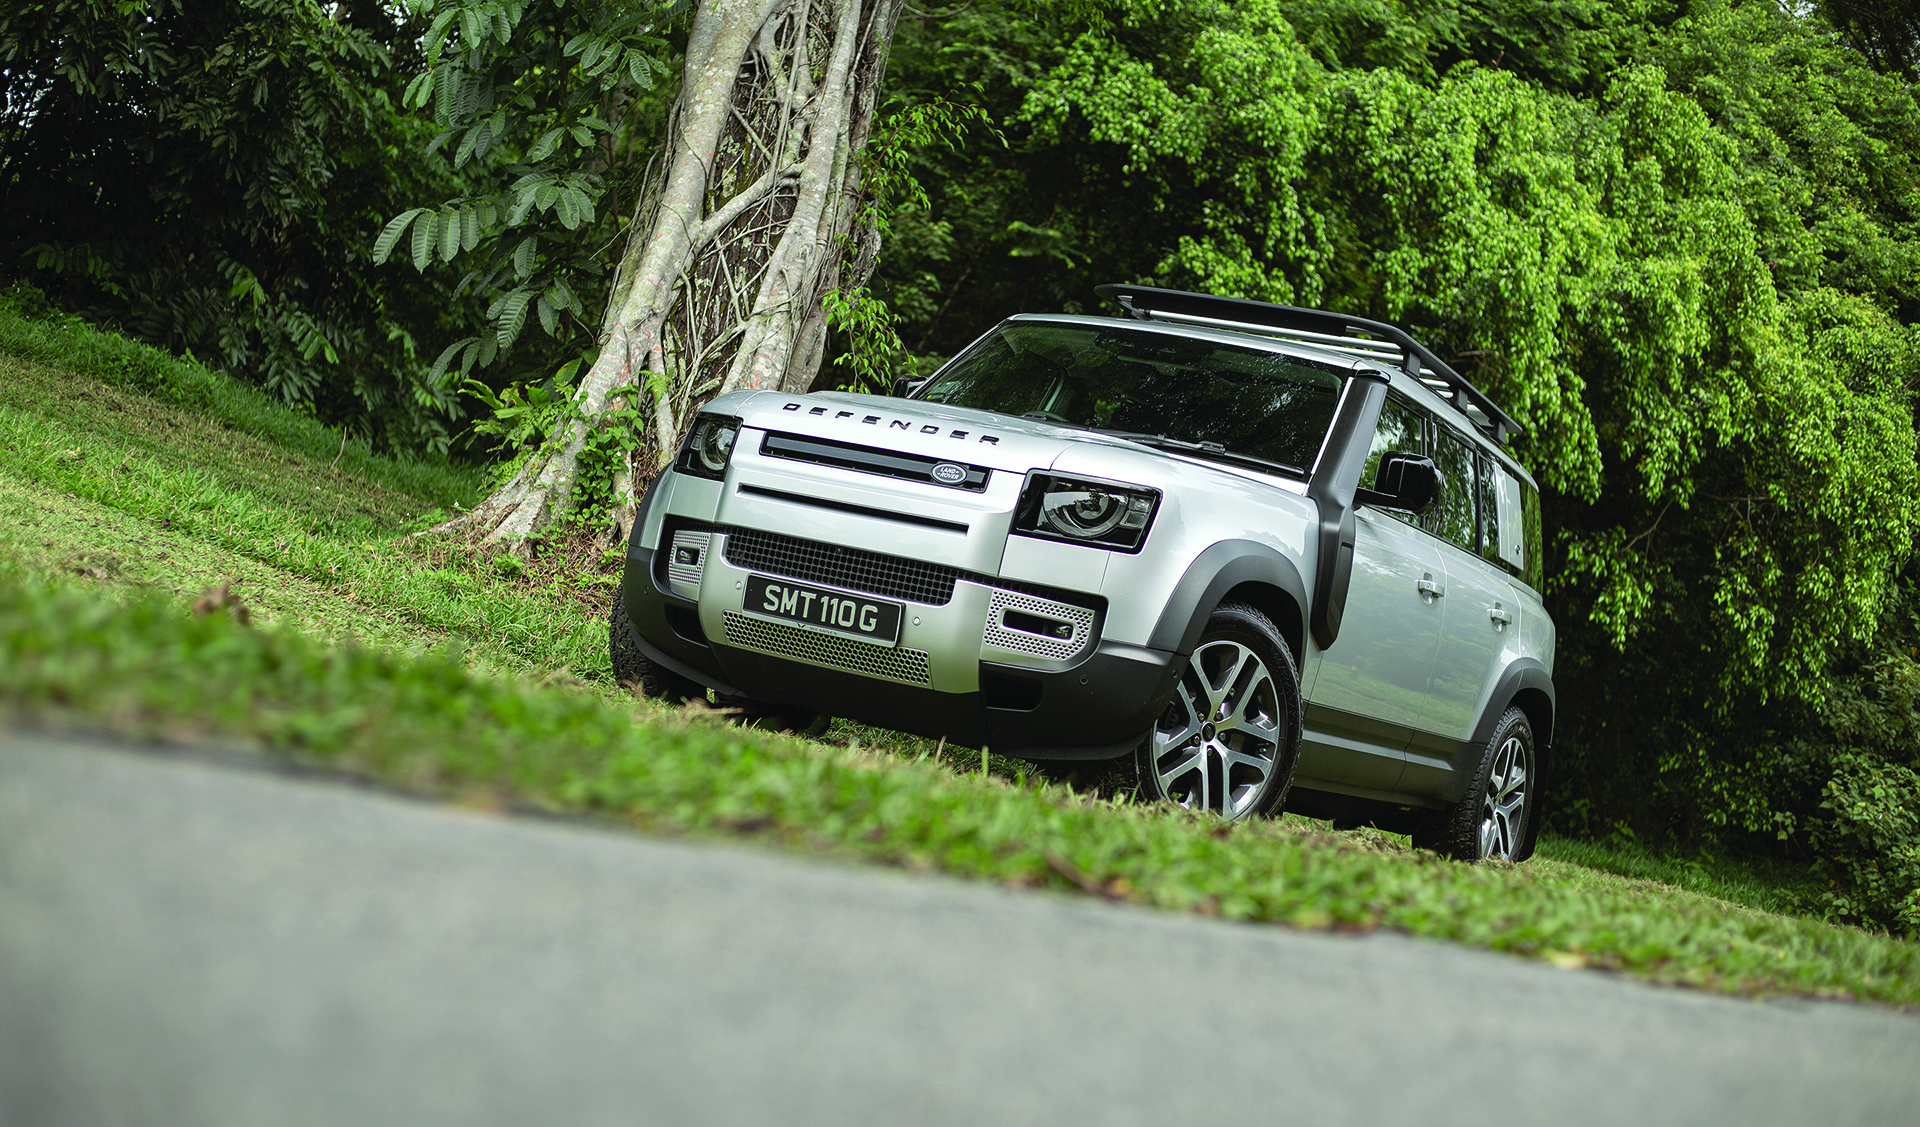 2020 LAND ROVER DEFENDER 110 P400 REVIEW: Defender of the Faith